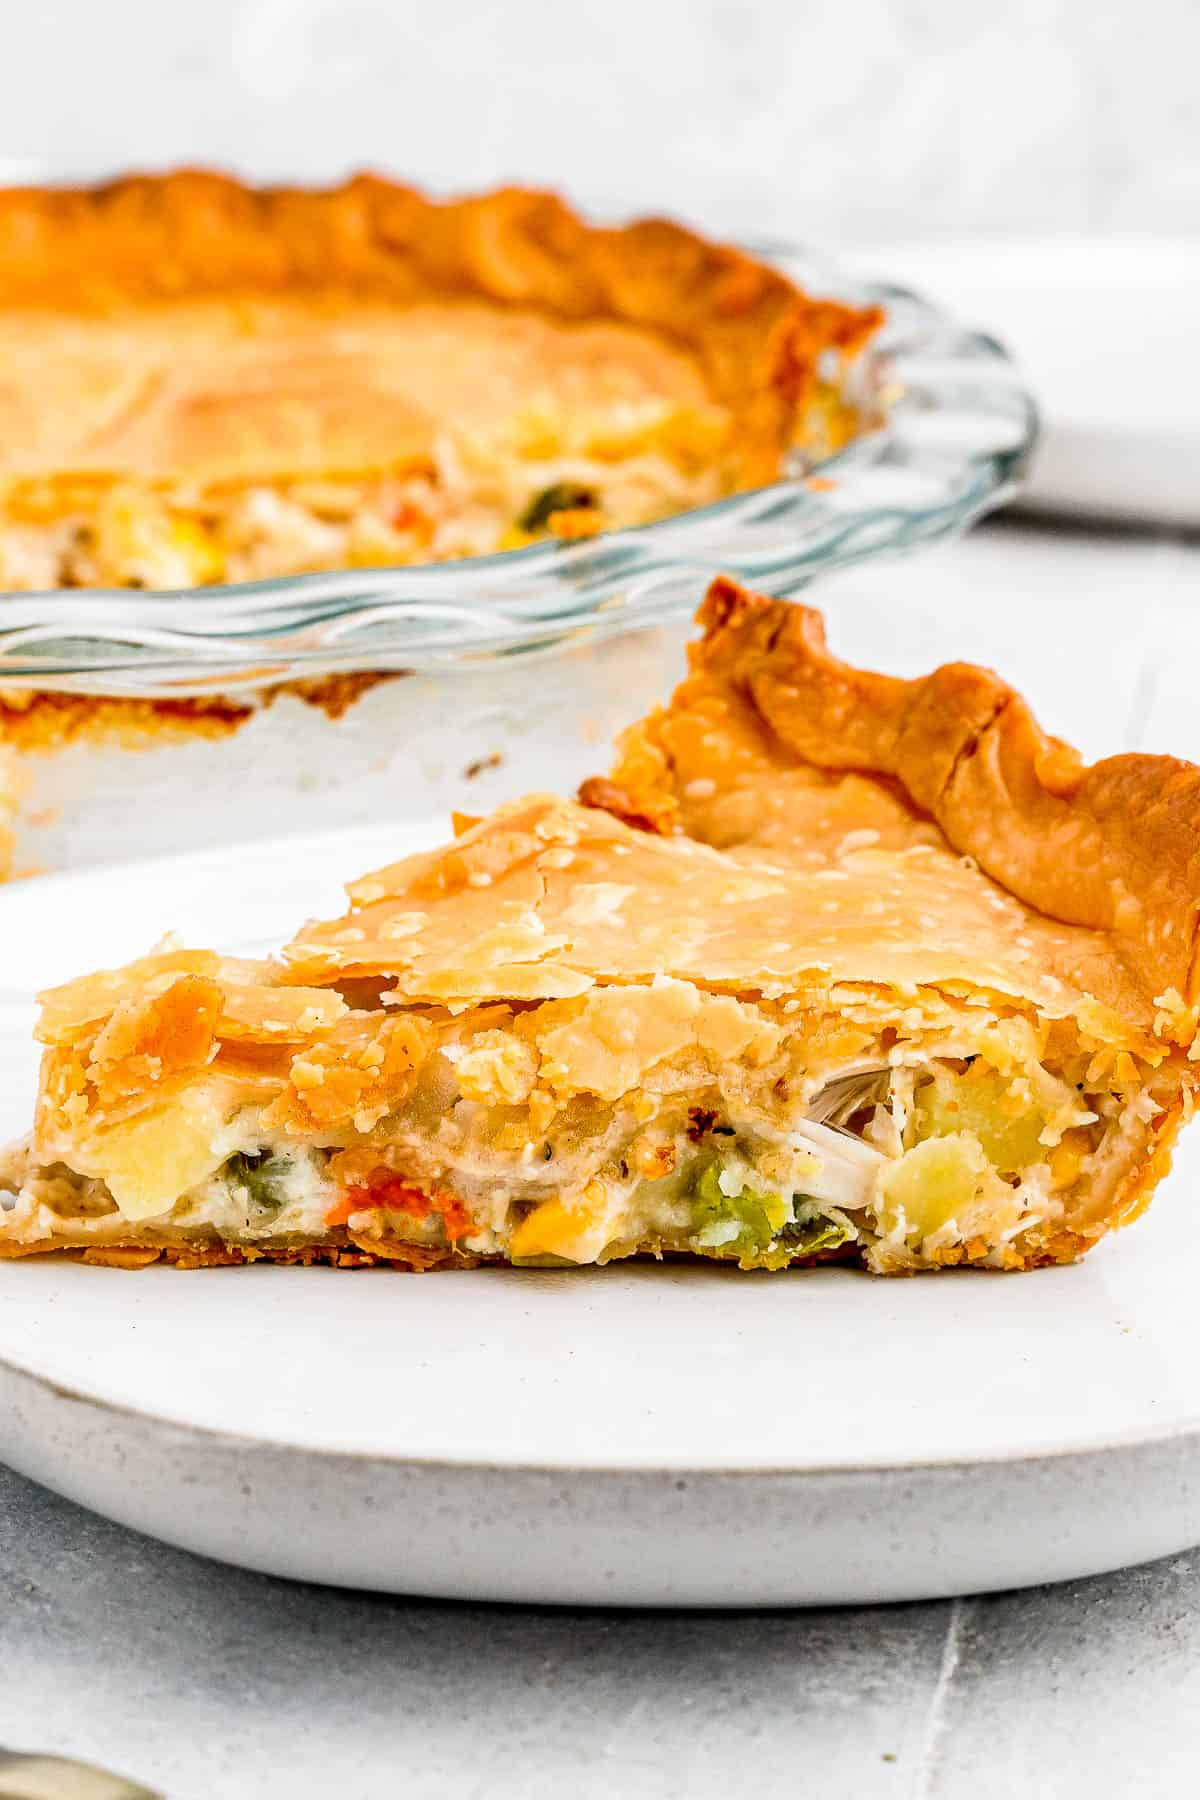 In the background, the baked chicken pot pie. In the foreground, a slice of the pie on a plate with a fork.